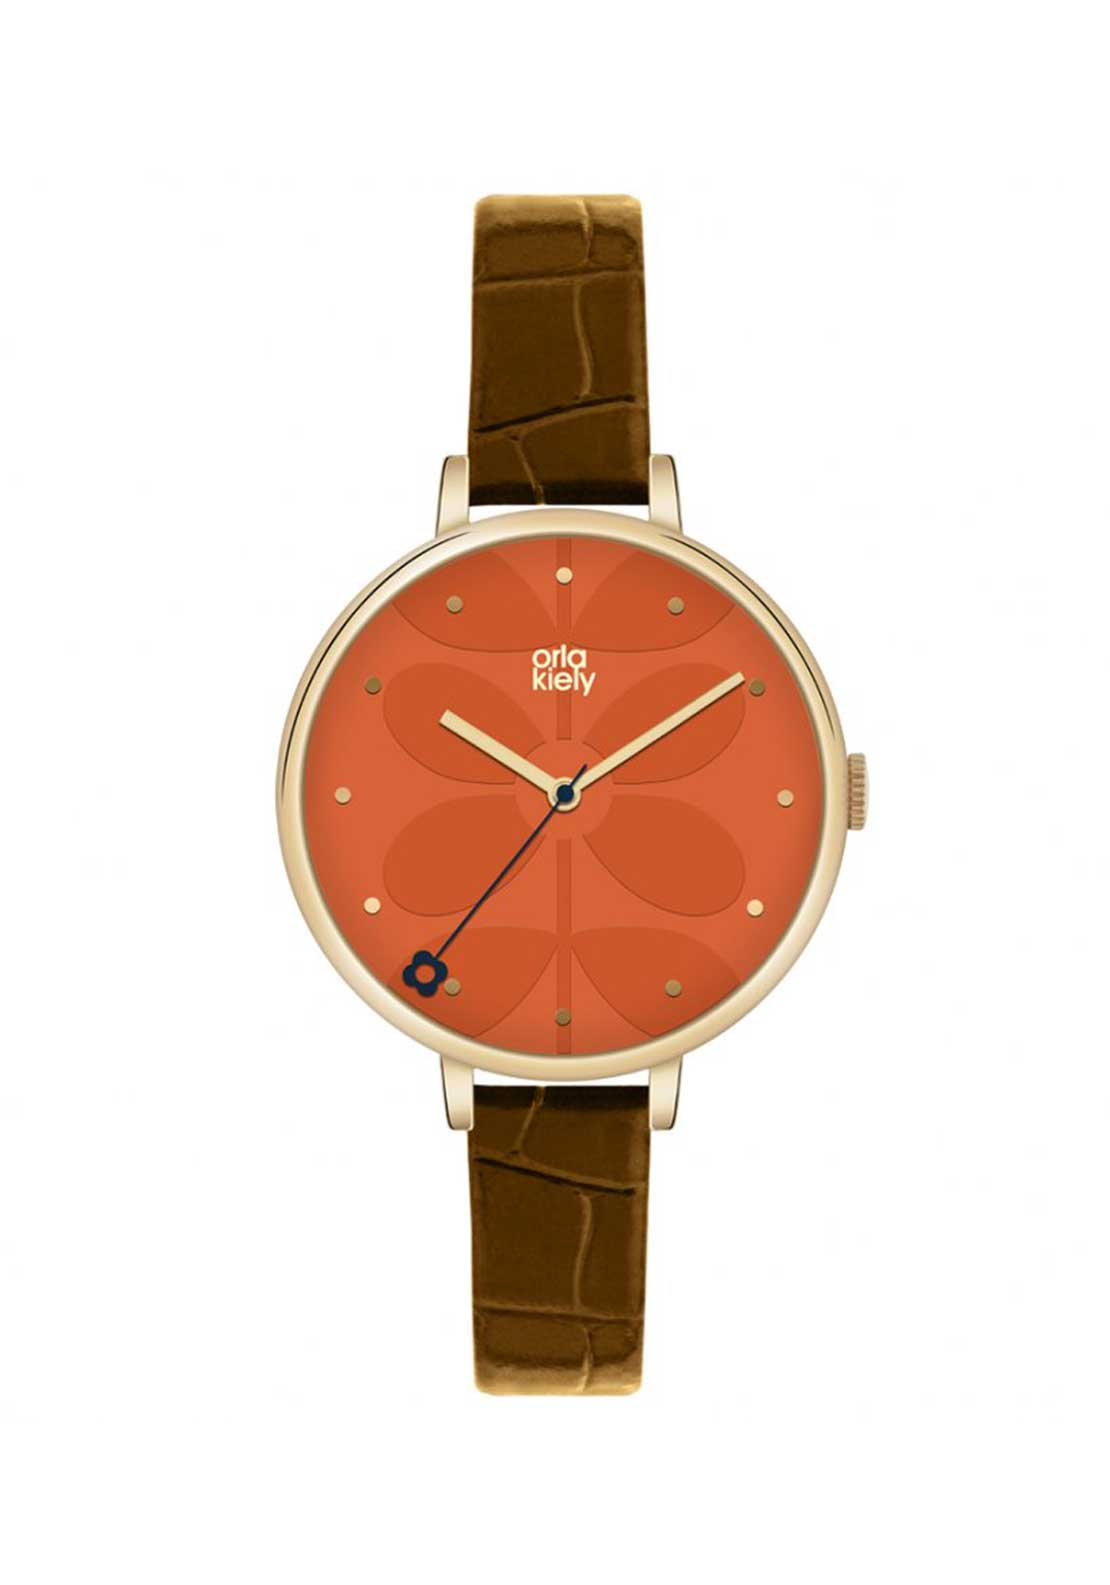 Orla Kiely Time Ivy Orange Watch with Brown Leather Strap